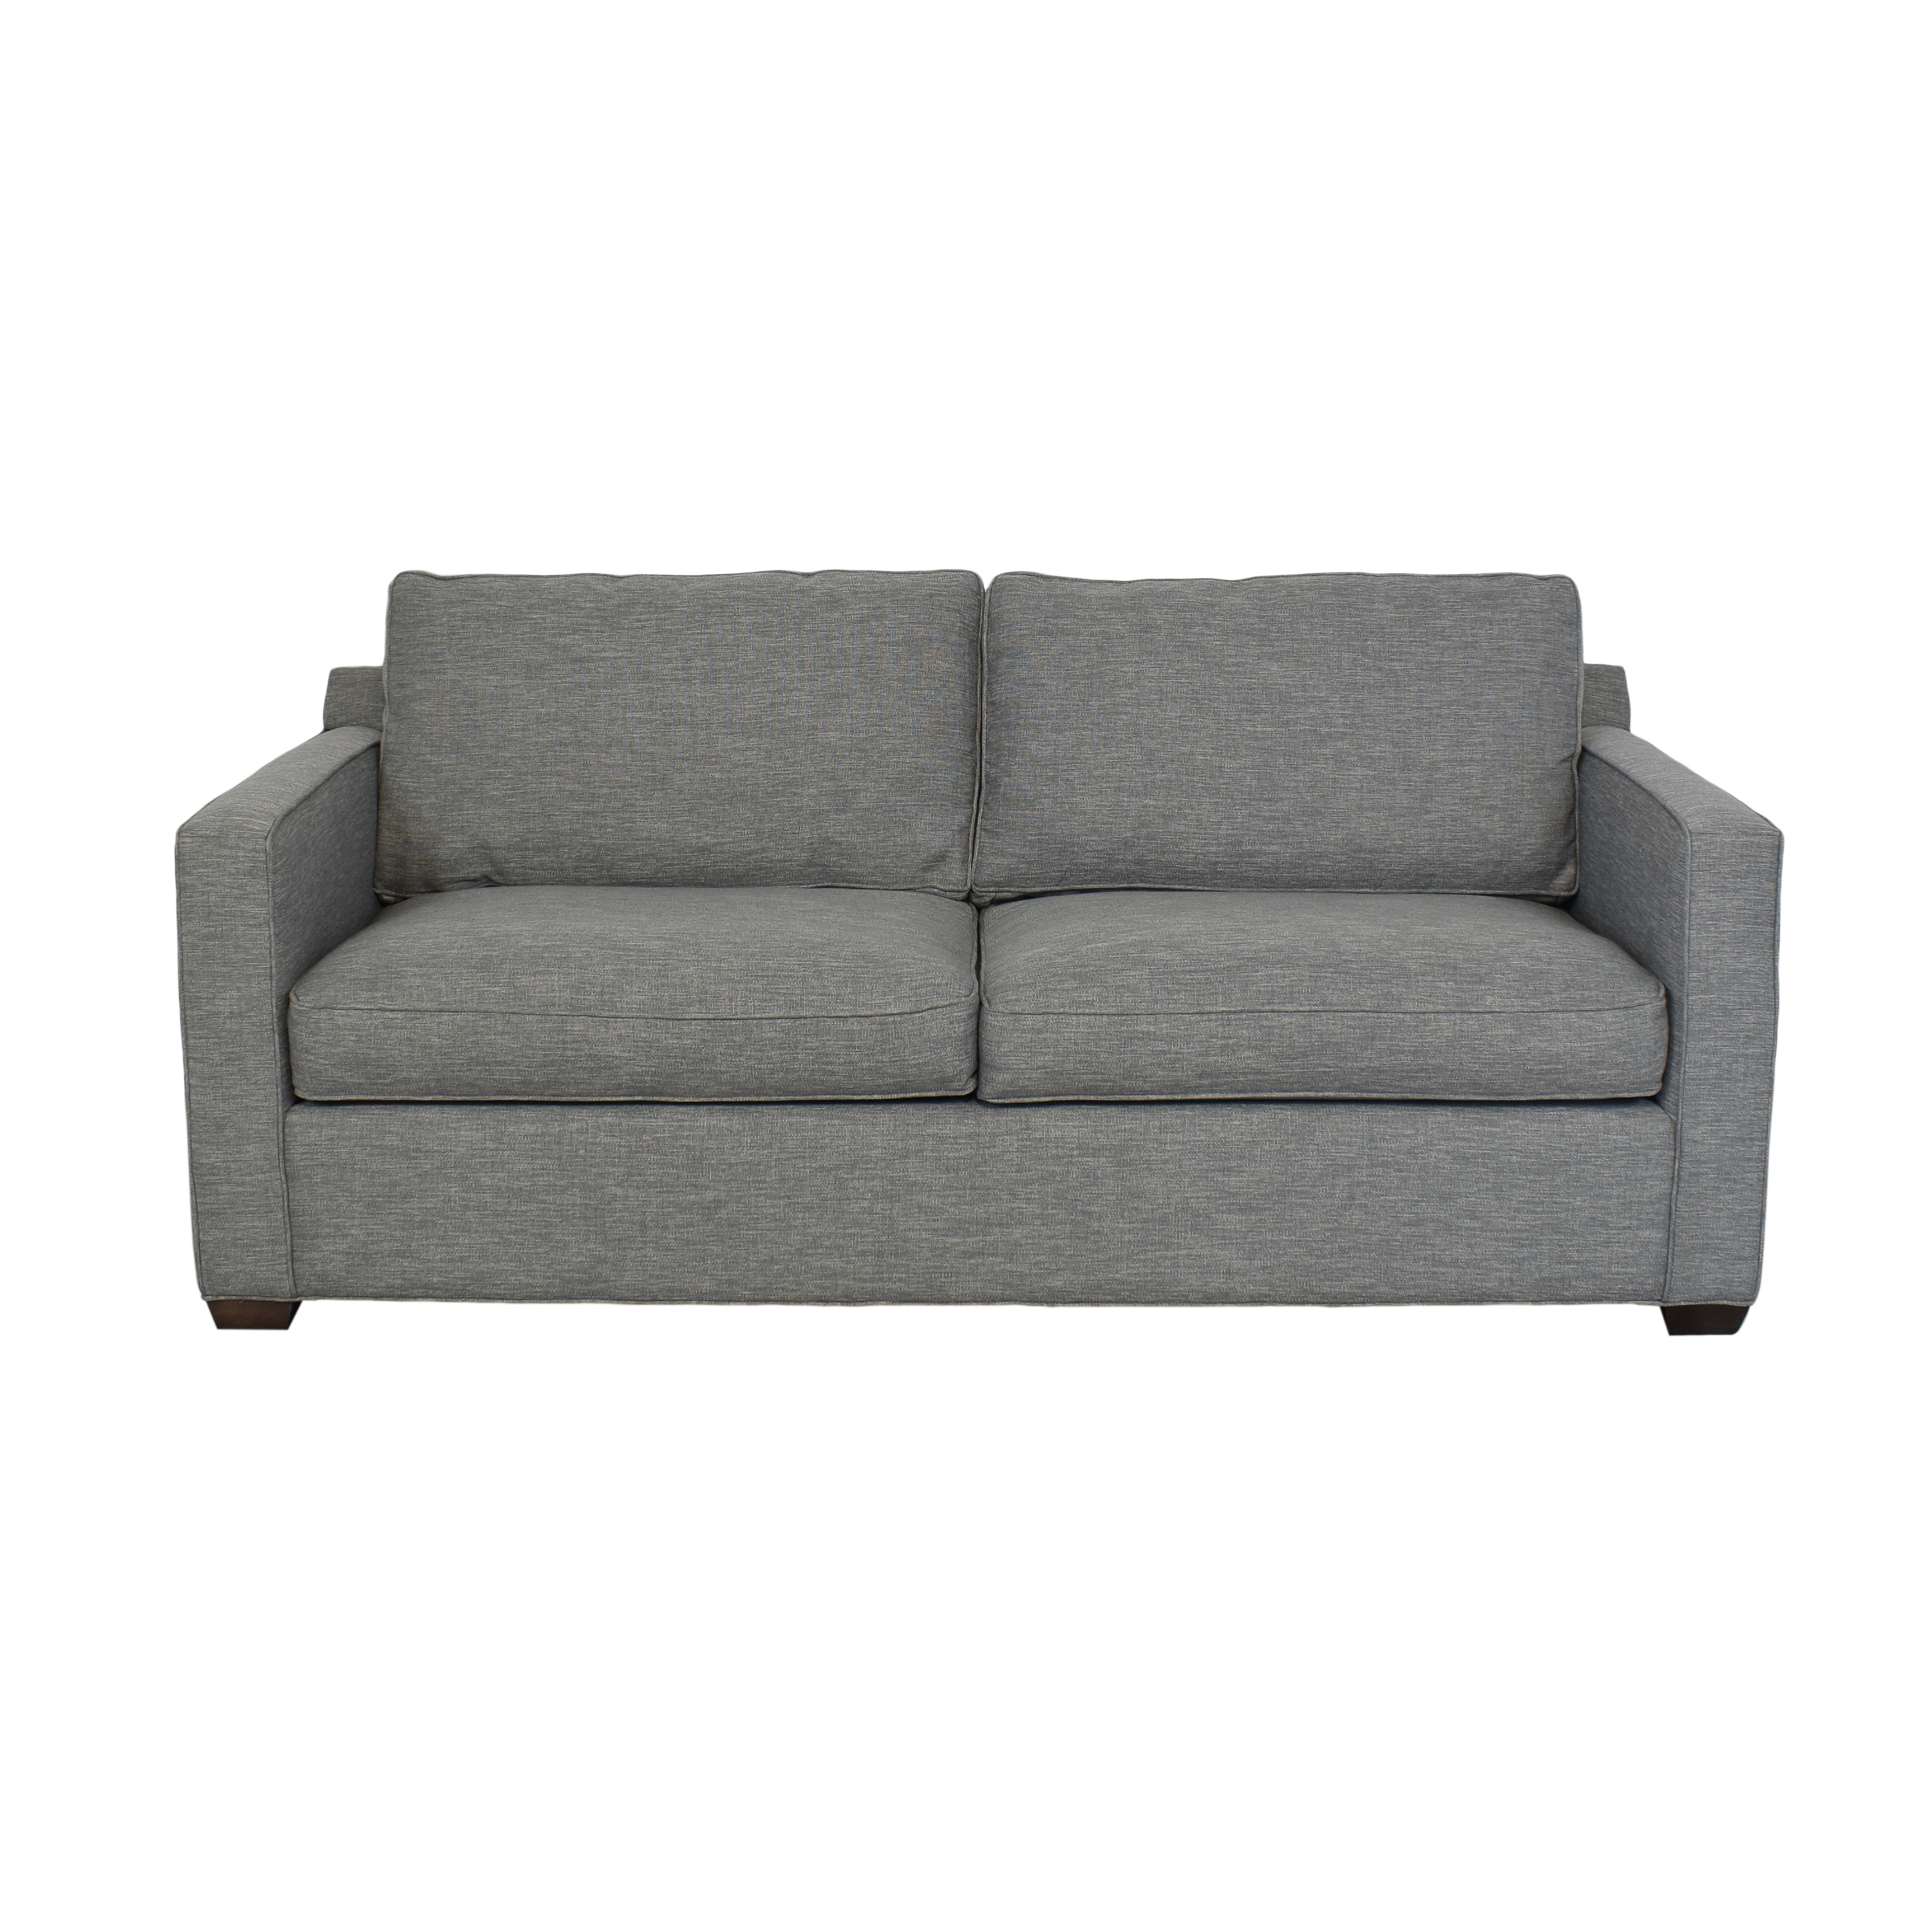 Crate & Barrel Crate & Barrel Davis Sofa gray